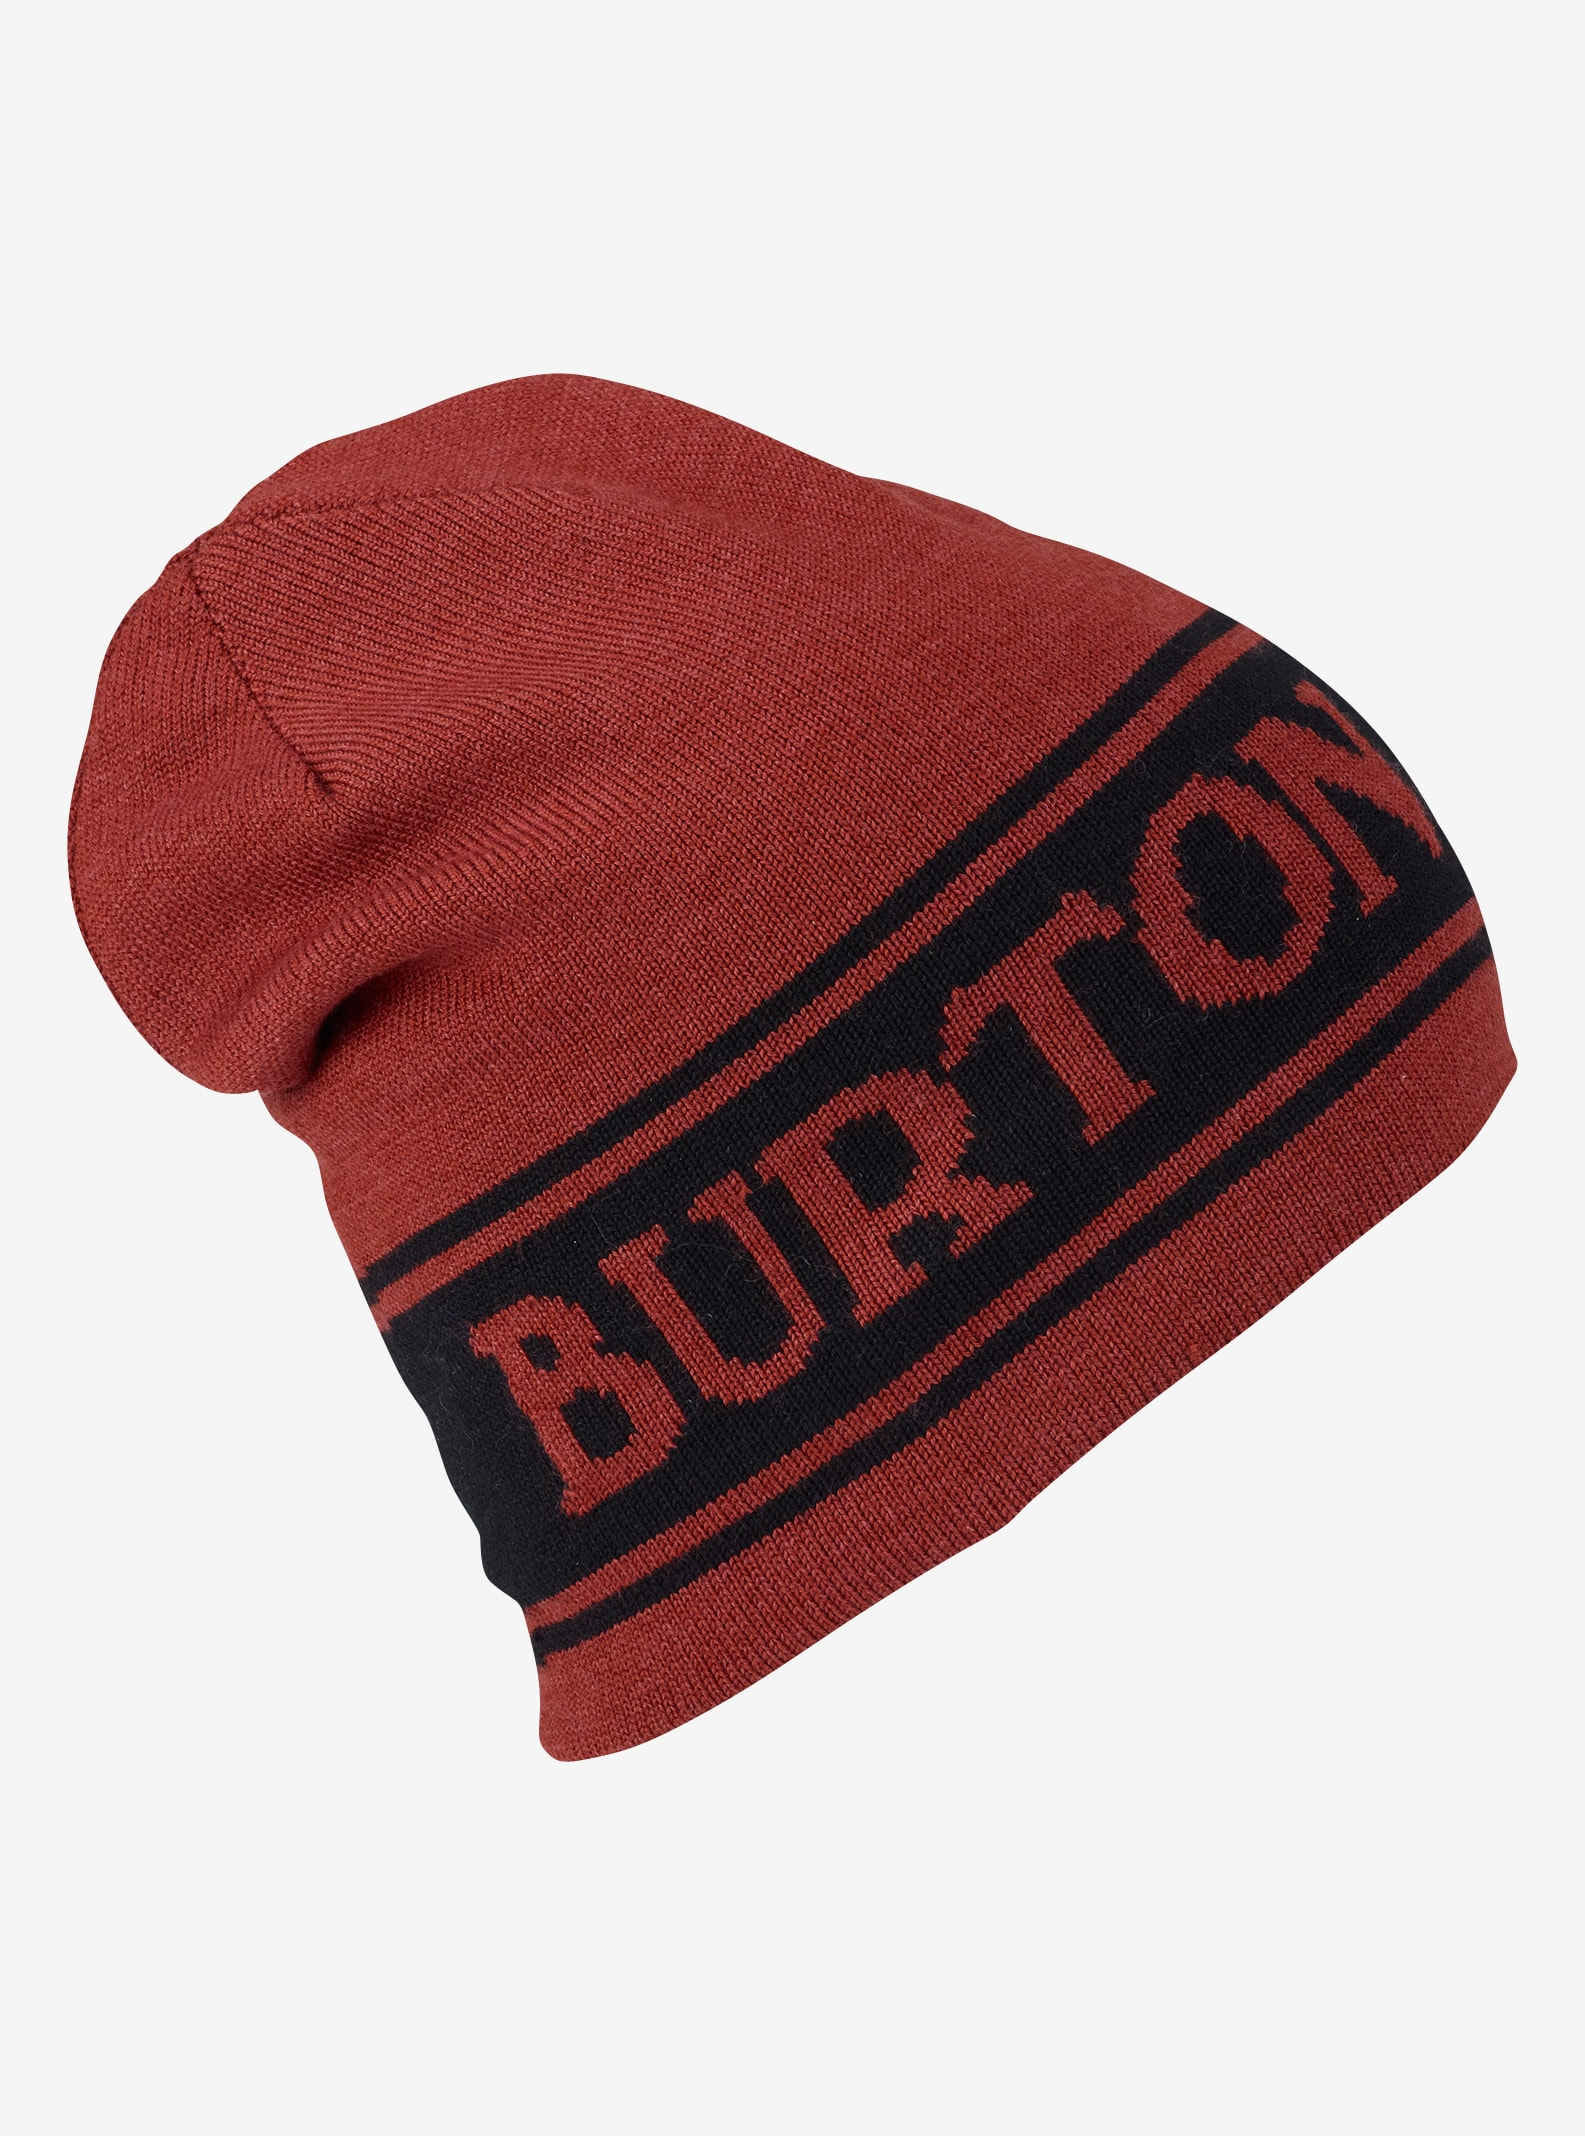 Burton Billboard Wool Beanie - Reversible shown in Fired Brick